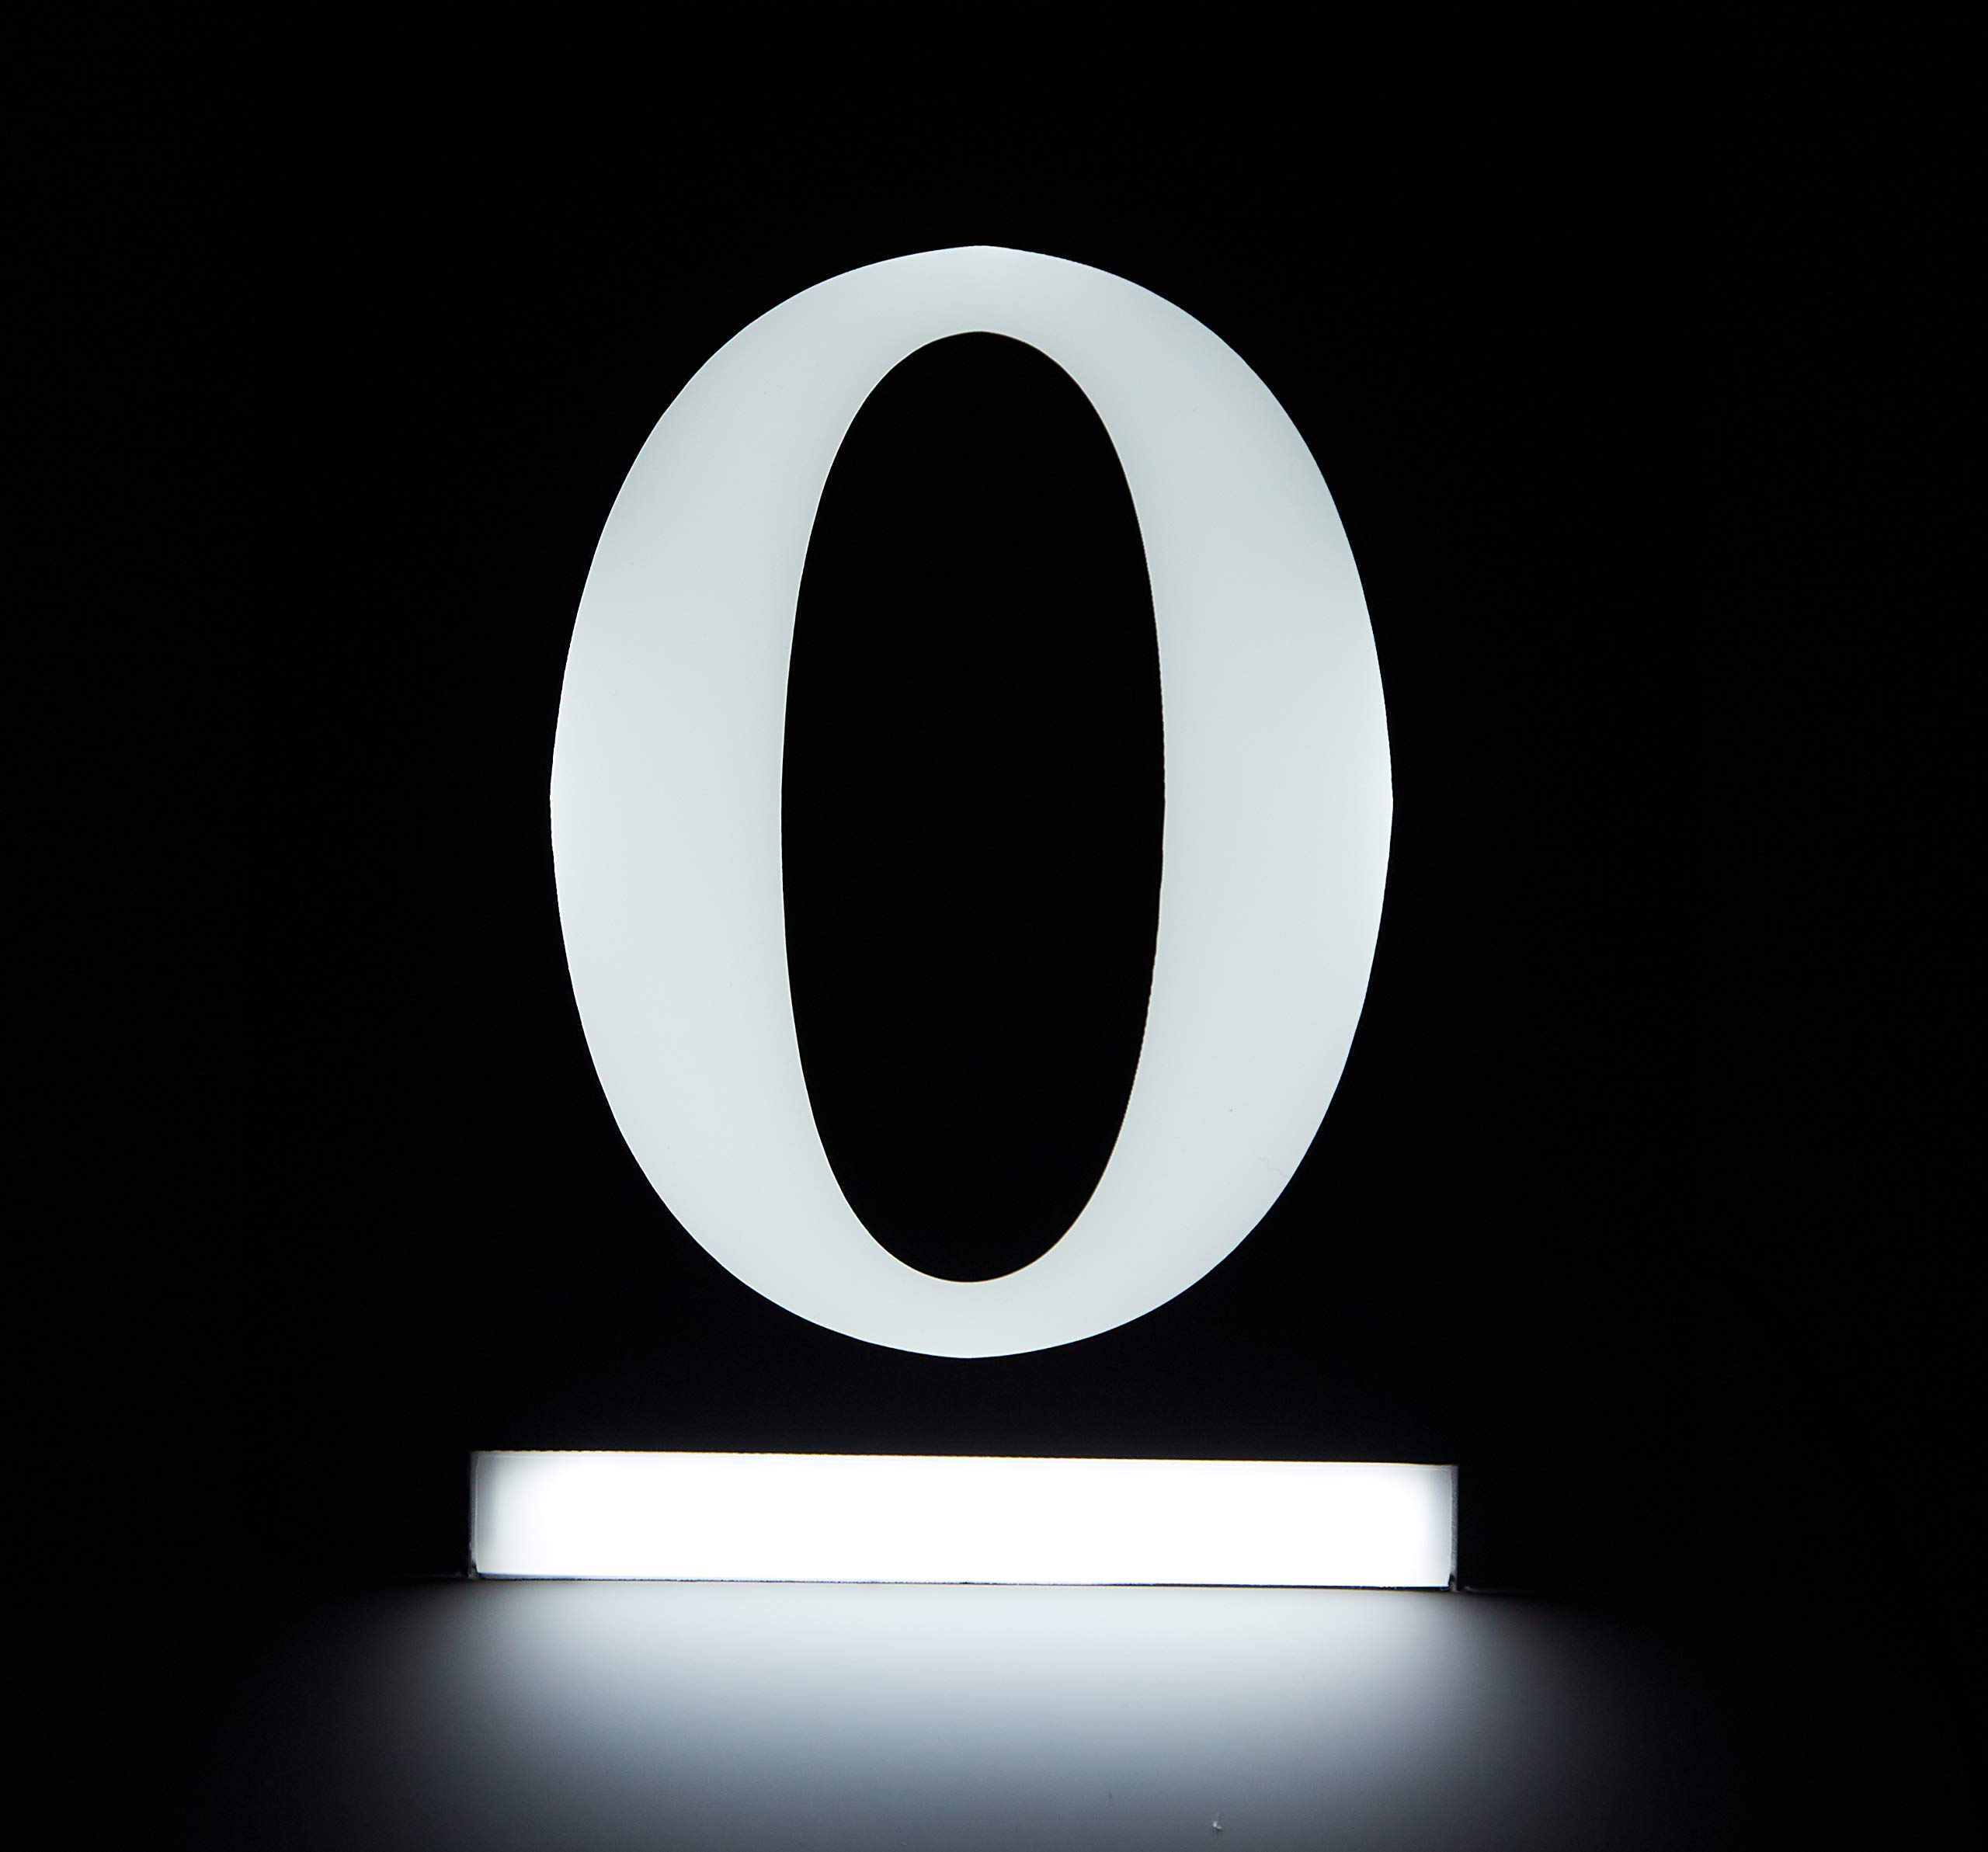 HOMIDEA Backlit Led House Numbers. Light Up House Numbers. Personalized Lighted Address Signs for Houses, Illuminated House Numbers, Address Light Numbers for Houses - Number 0